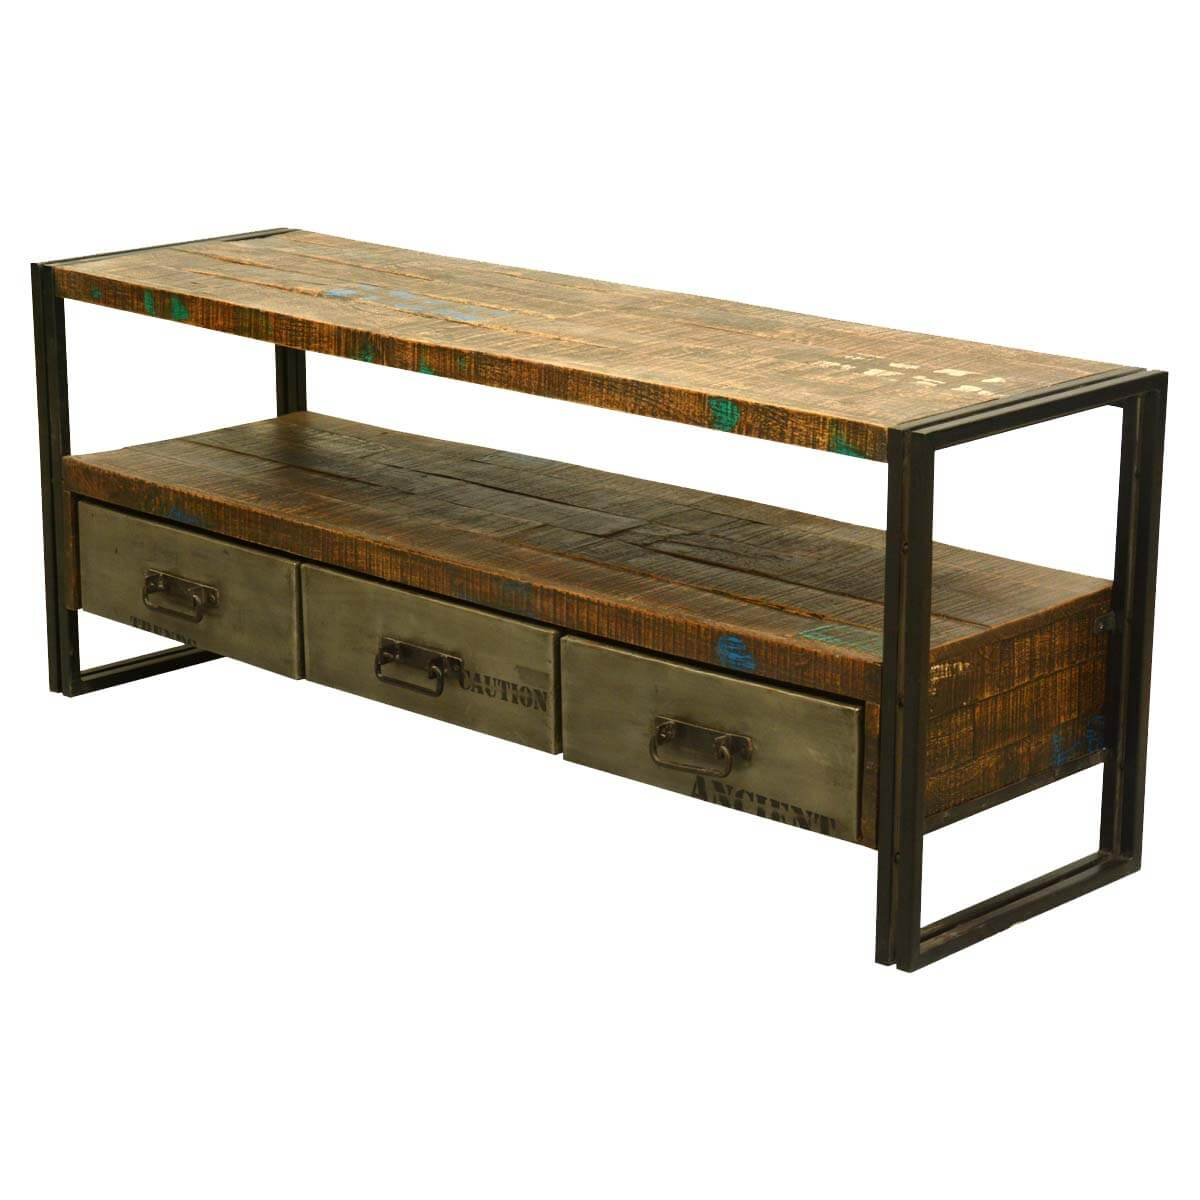 Modern Rustic Reclaimed Wood amp Iron Media Console